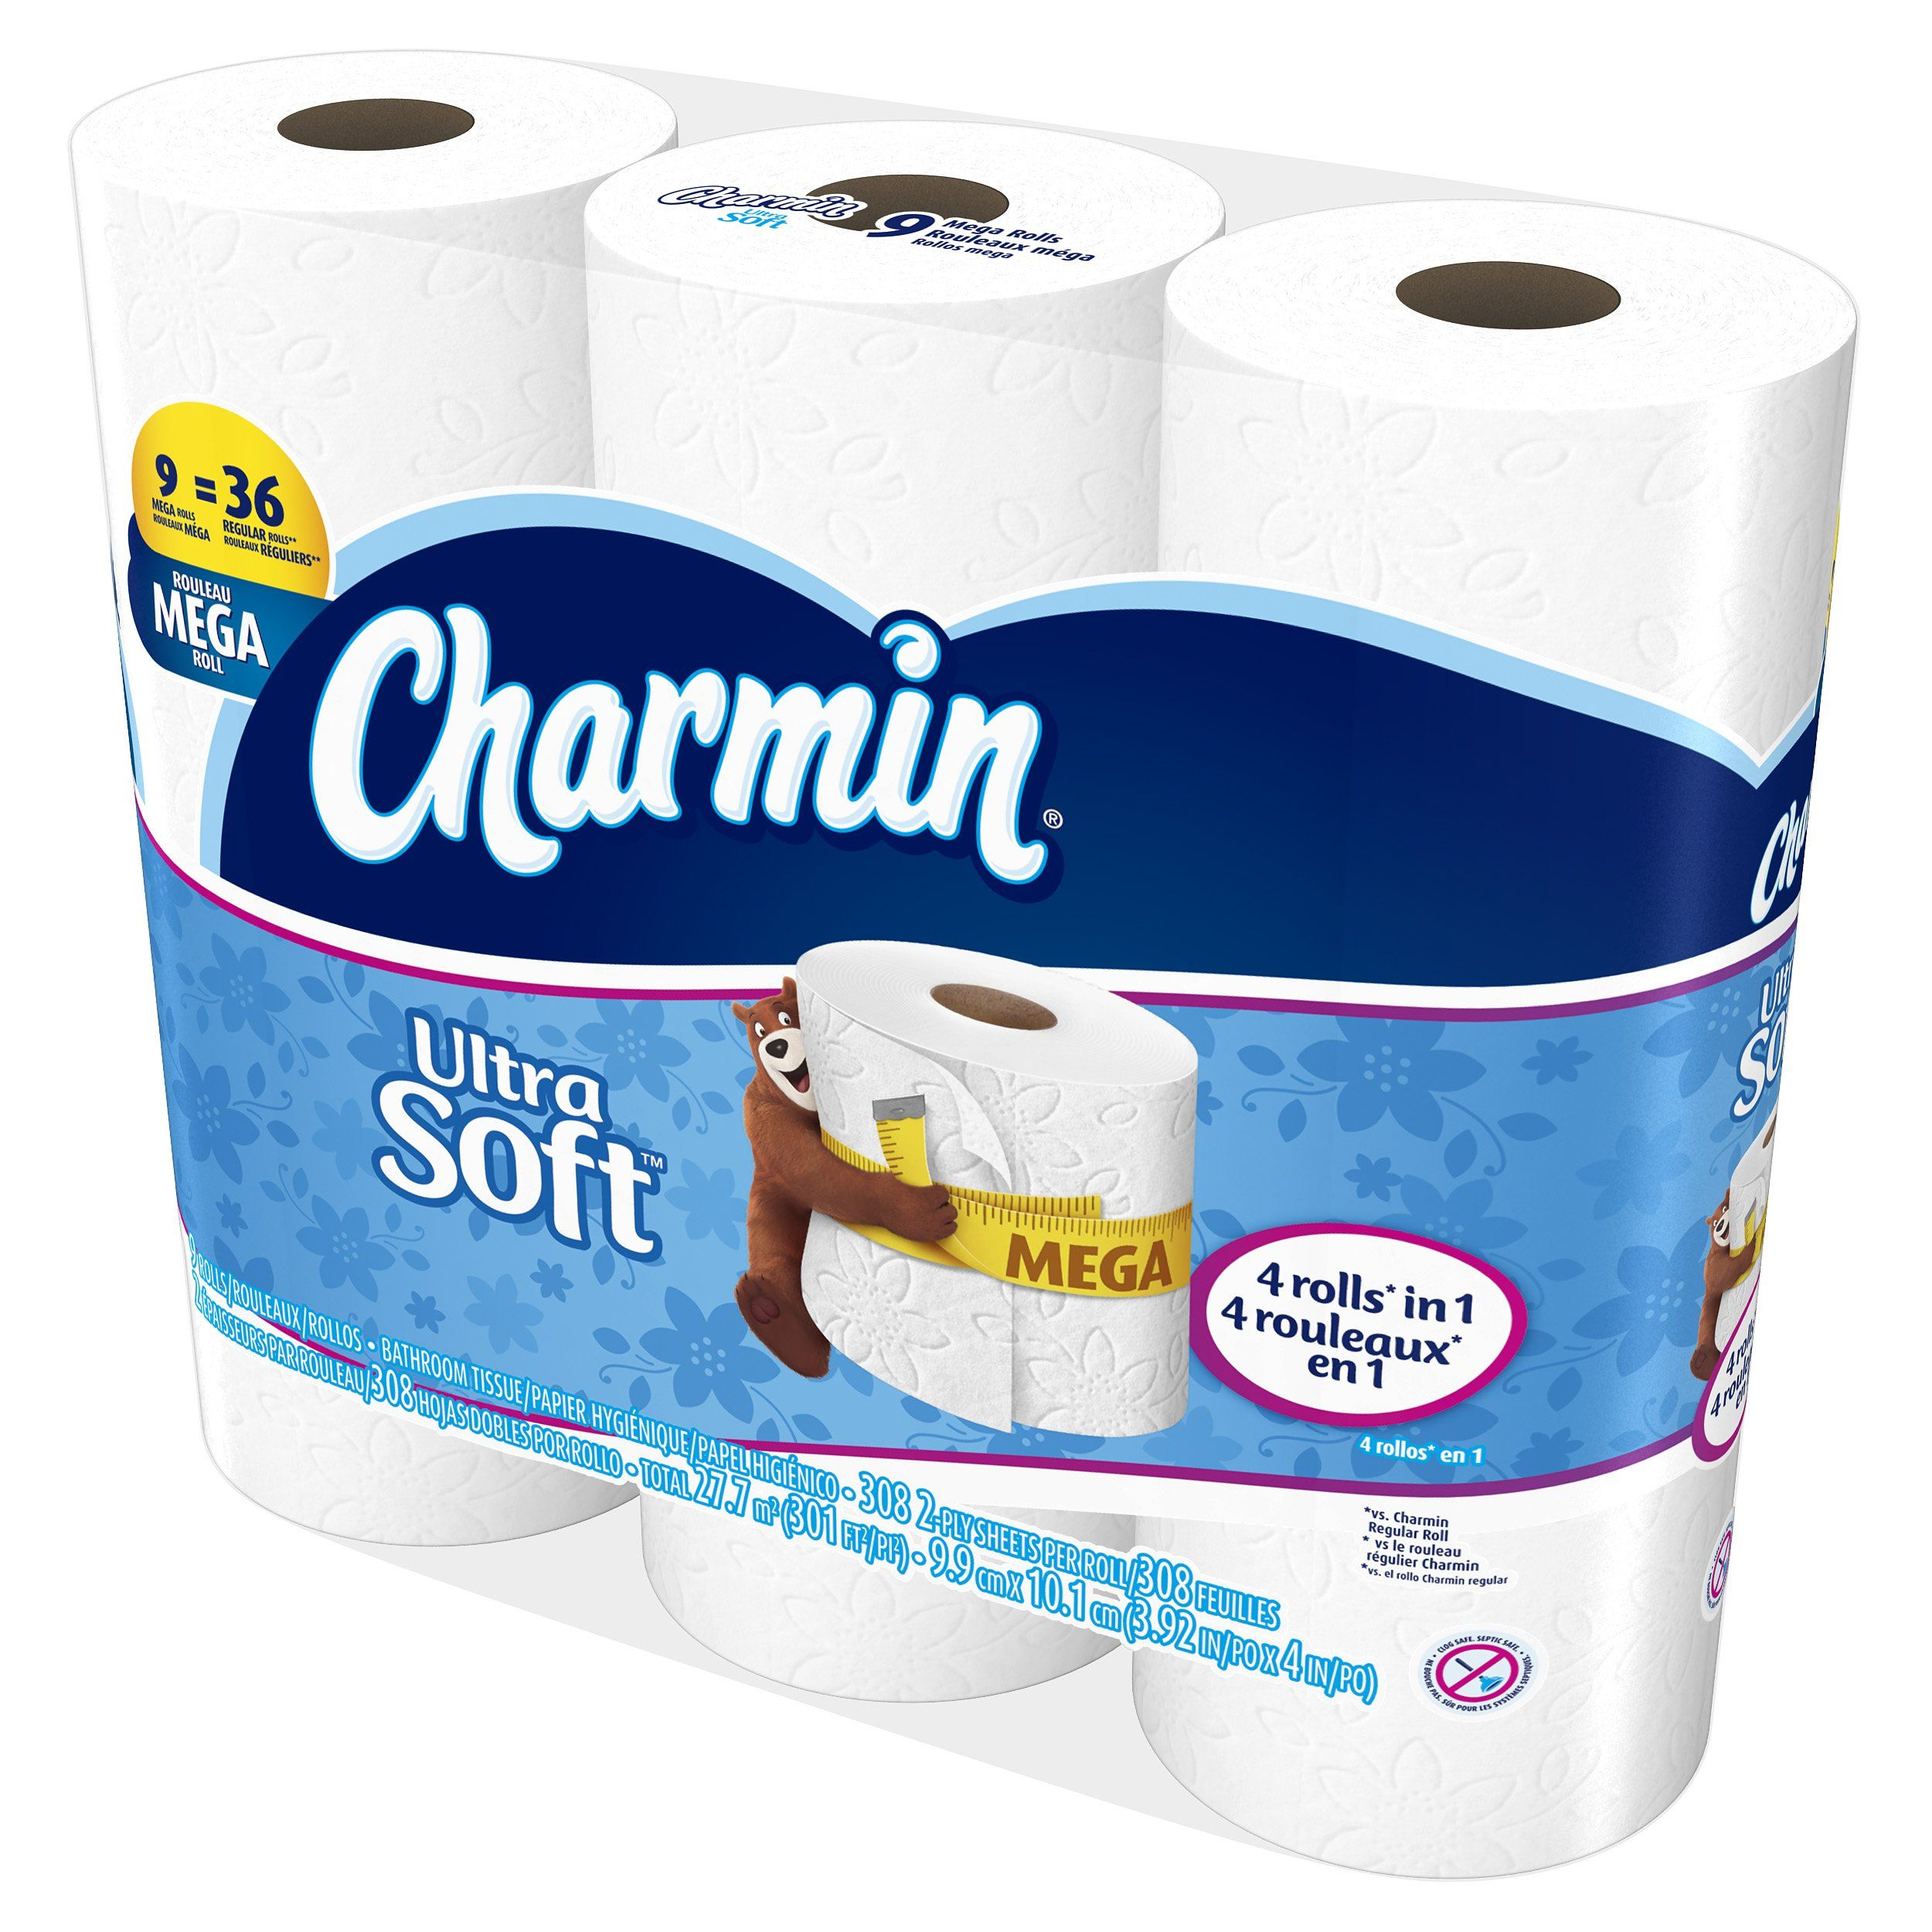 Charmin Ultra Soft Toilet Paper Bath Tissue Mega Roll 9 Count You Can Get More Details By Clicking On The Image This Is An Aff Charmin Bath Tissue Toilet